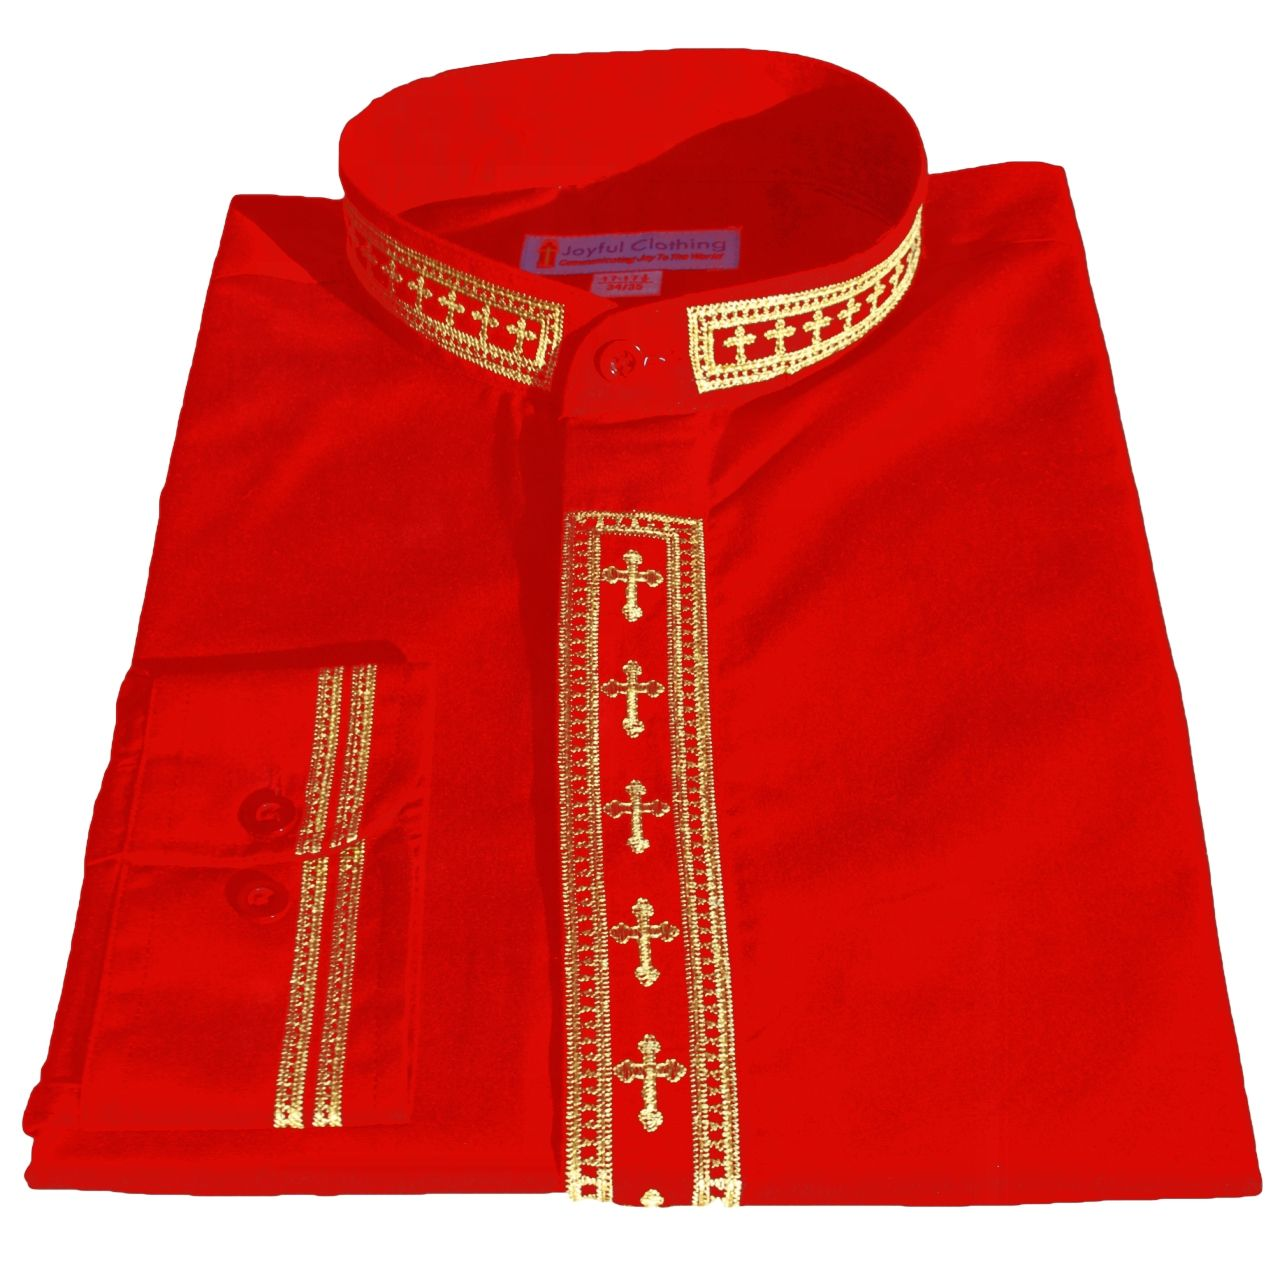 319. Men's Long-Sleeve Clergy Shirt With Fine Embroidery - Red/Gold